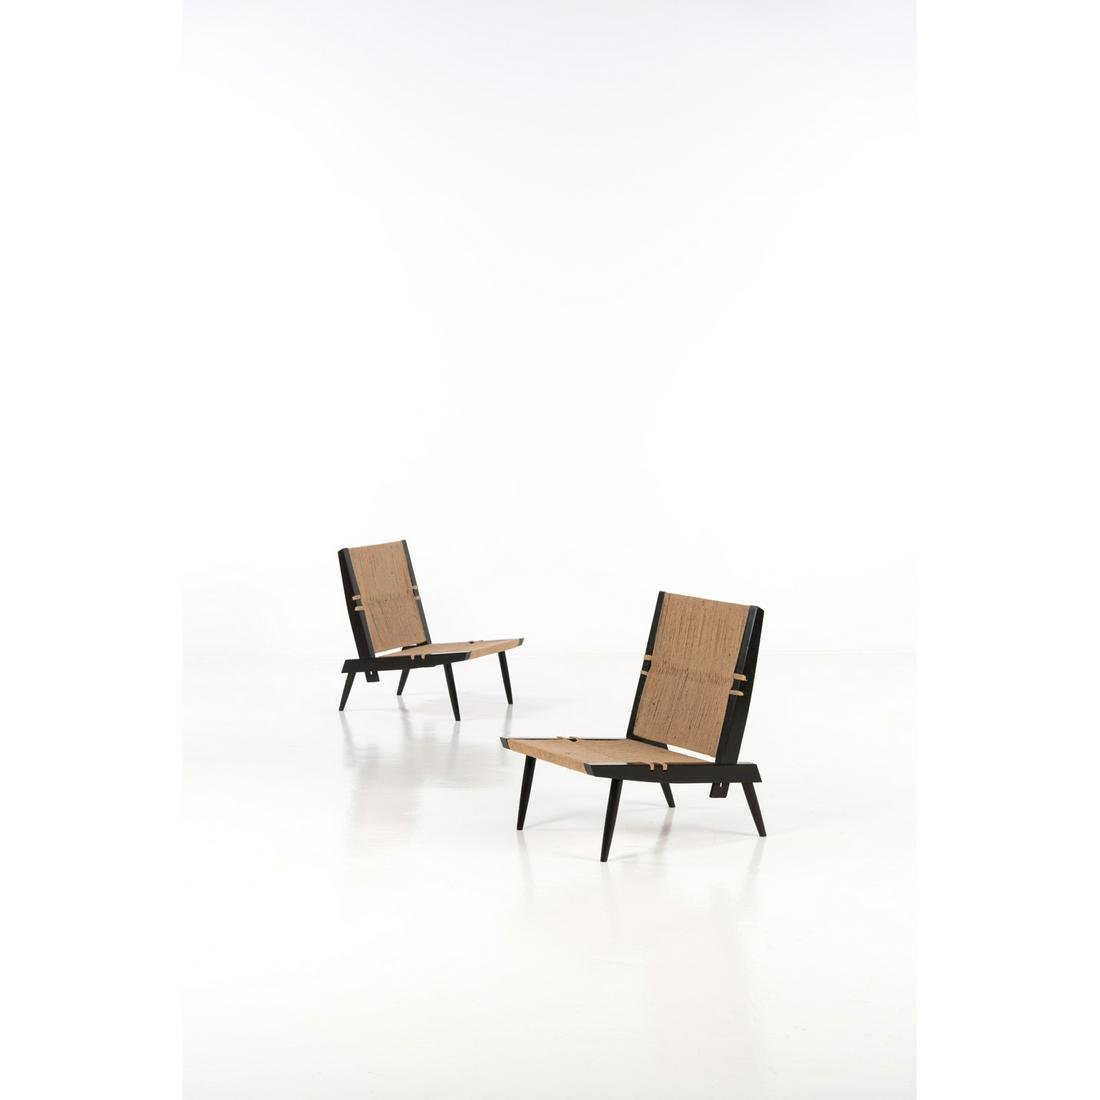 George Nakashima (1905-1990) Pair of lounge chairs